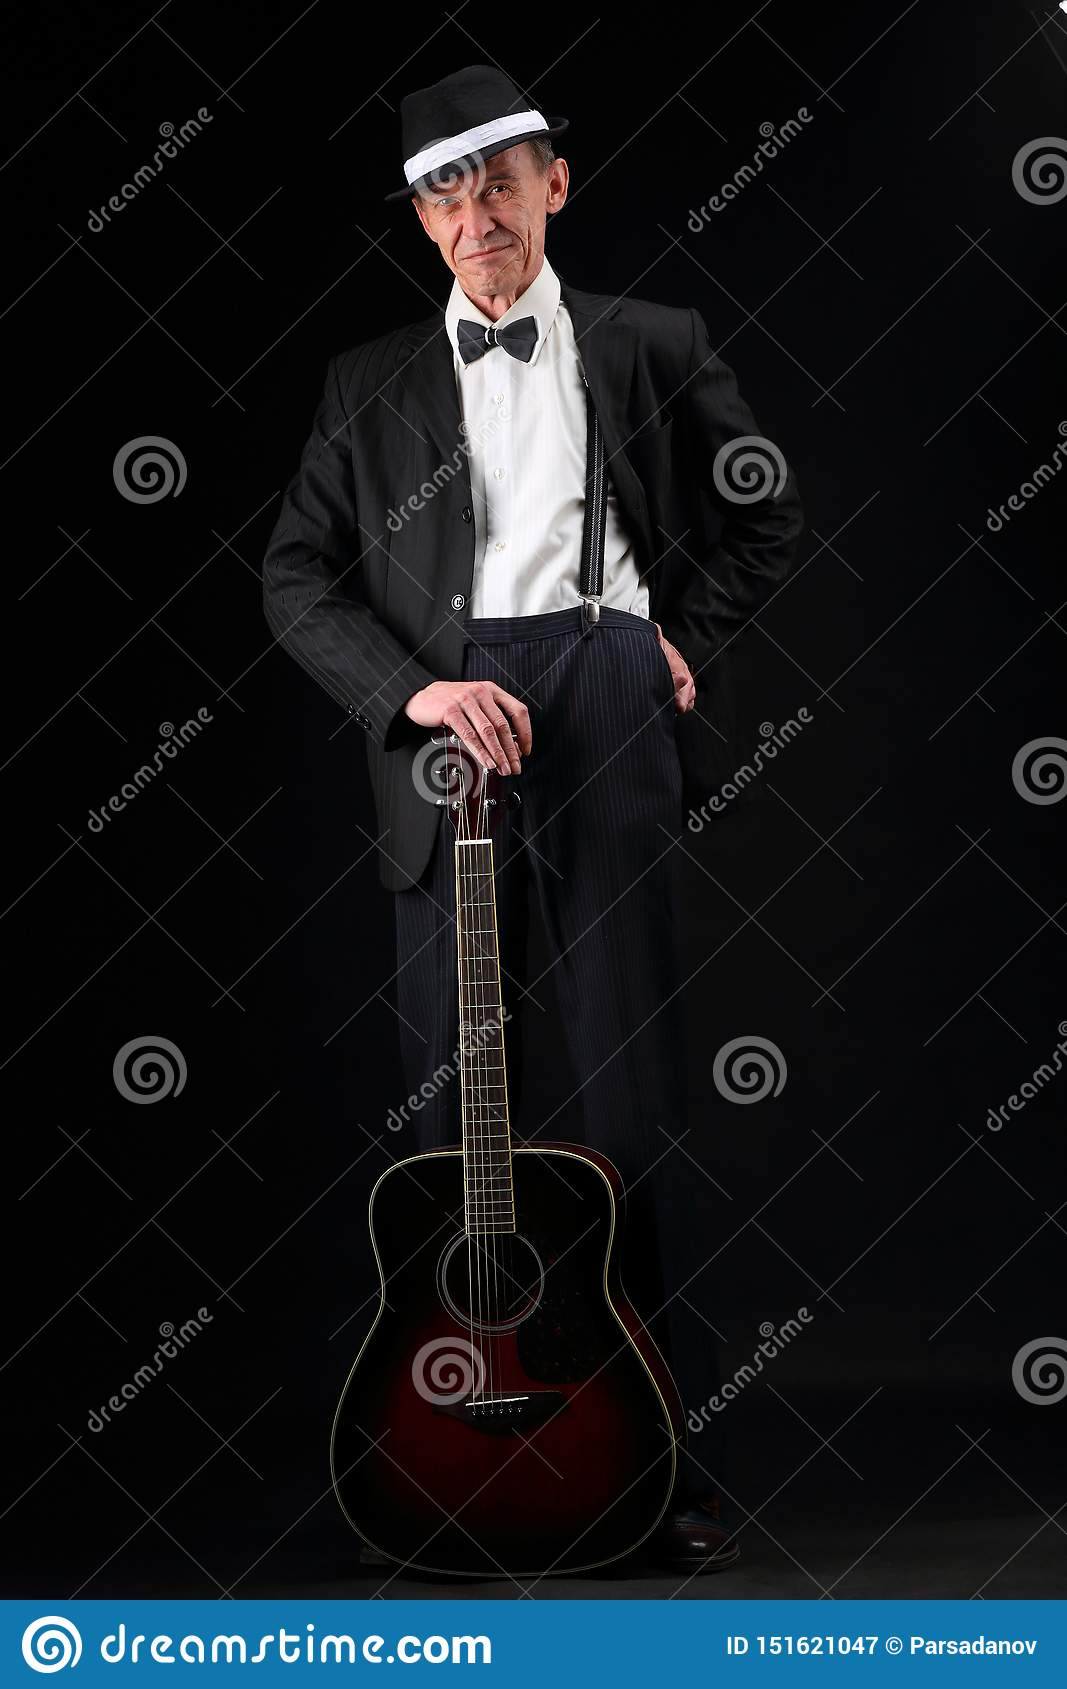 Growth portrait of an elderly musician with a guitar